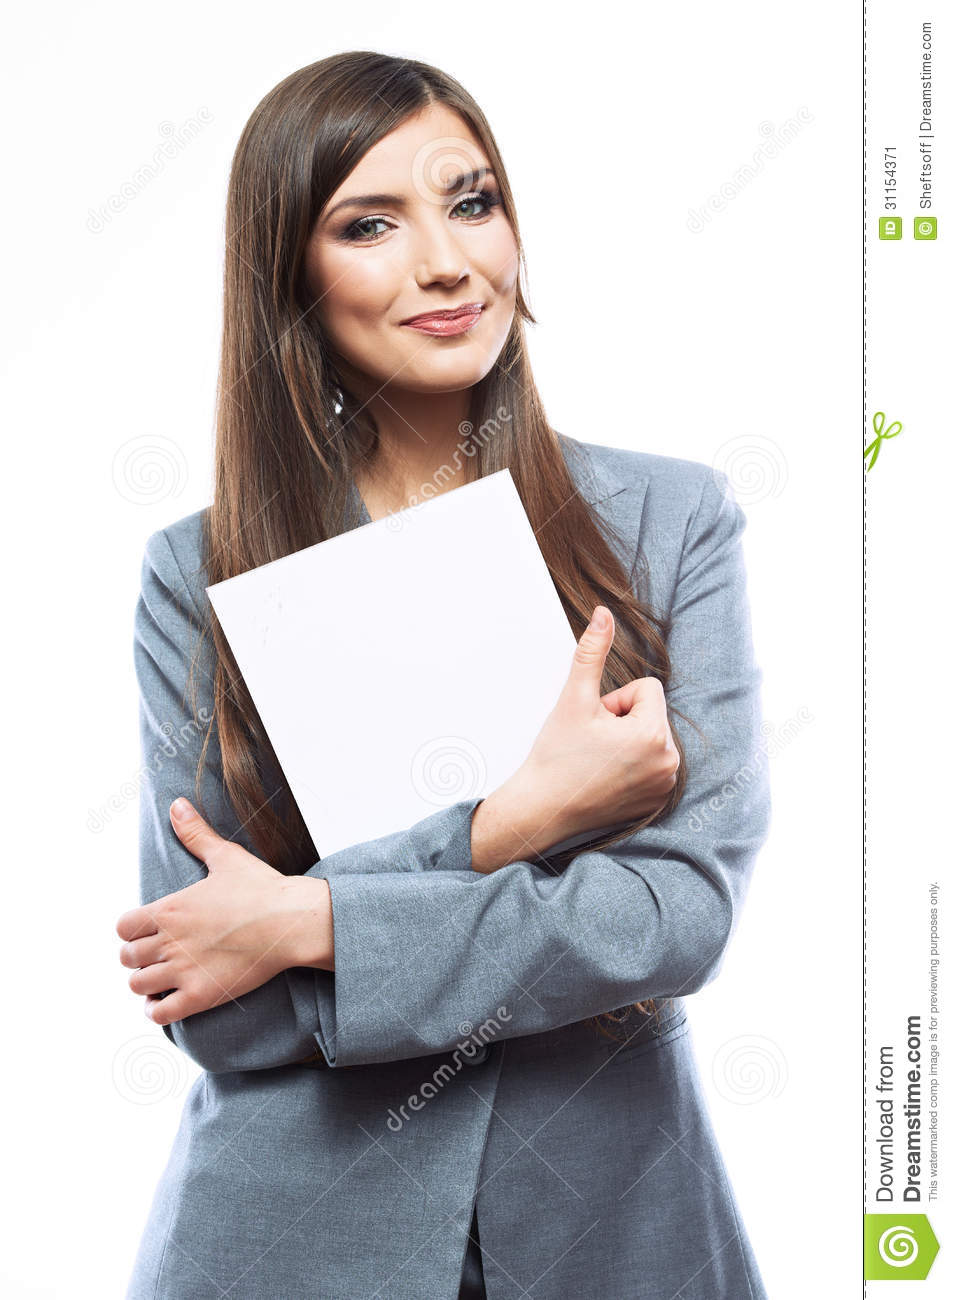 smile-business-woman-portrait-blank-whit